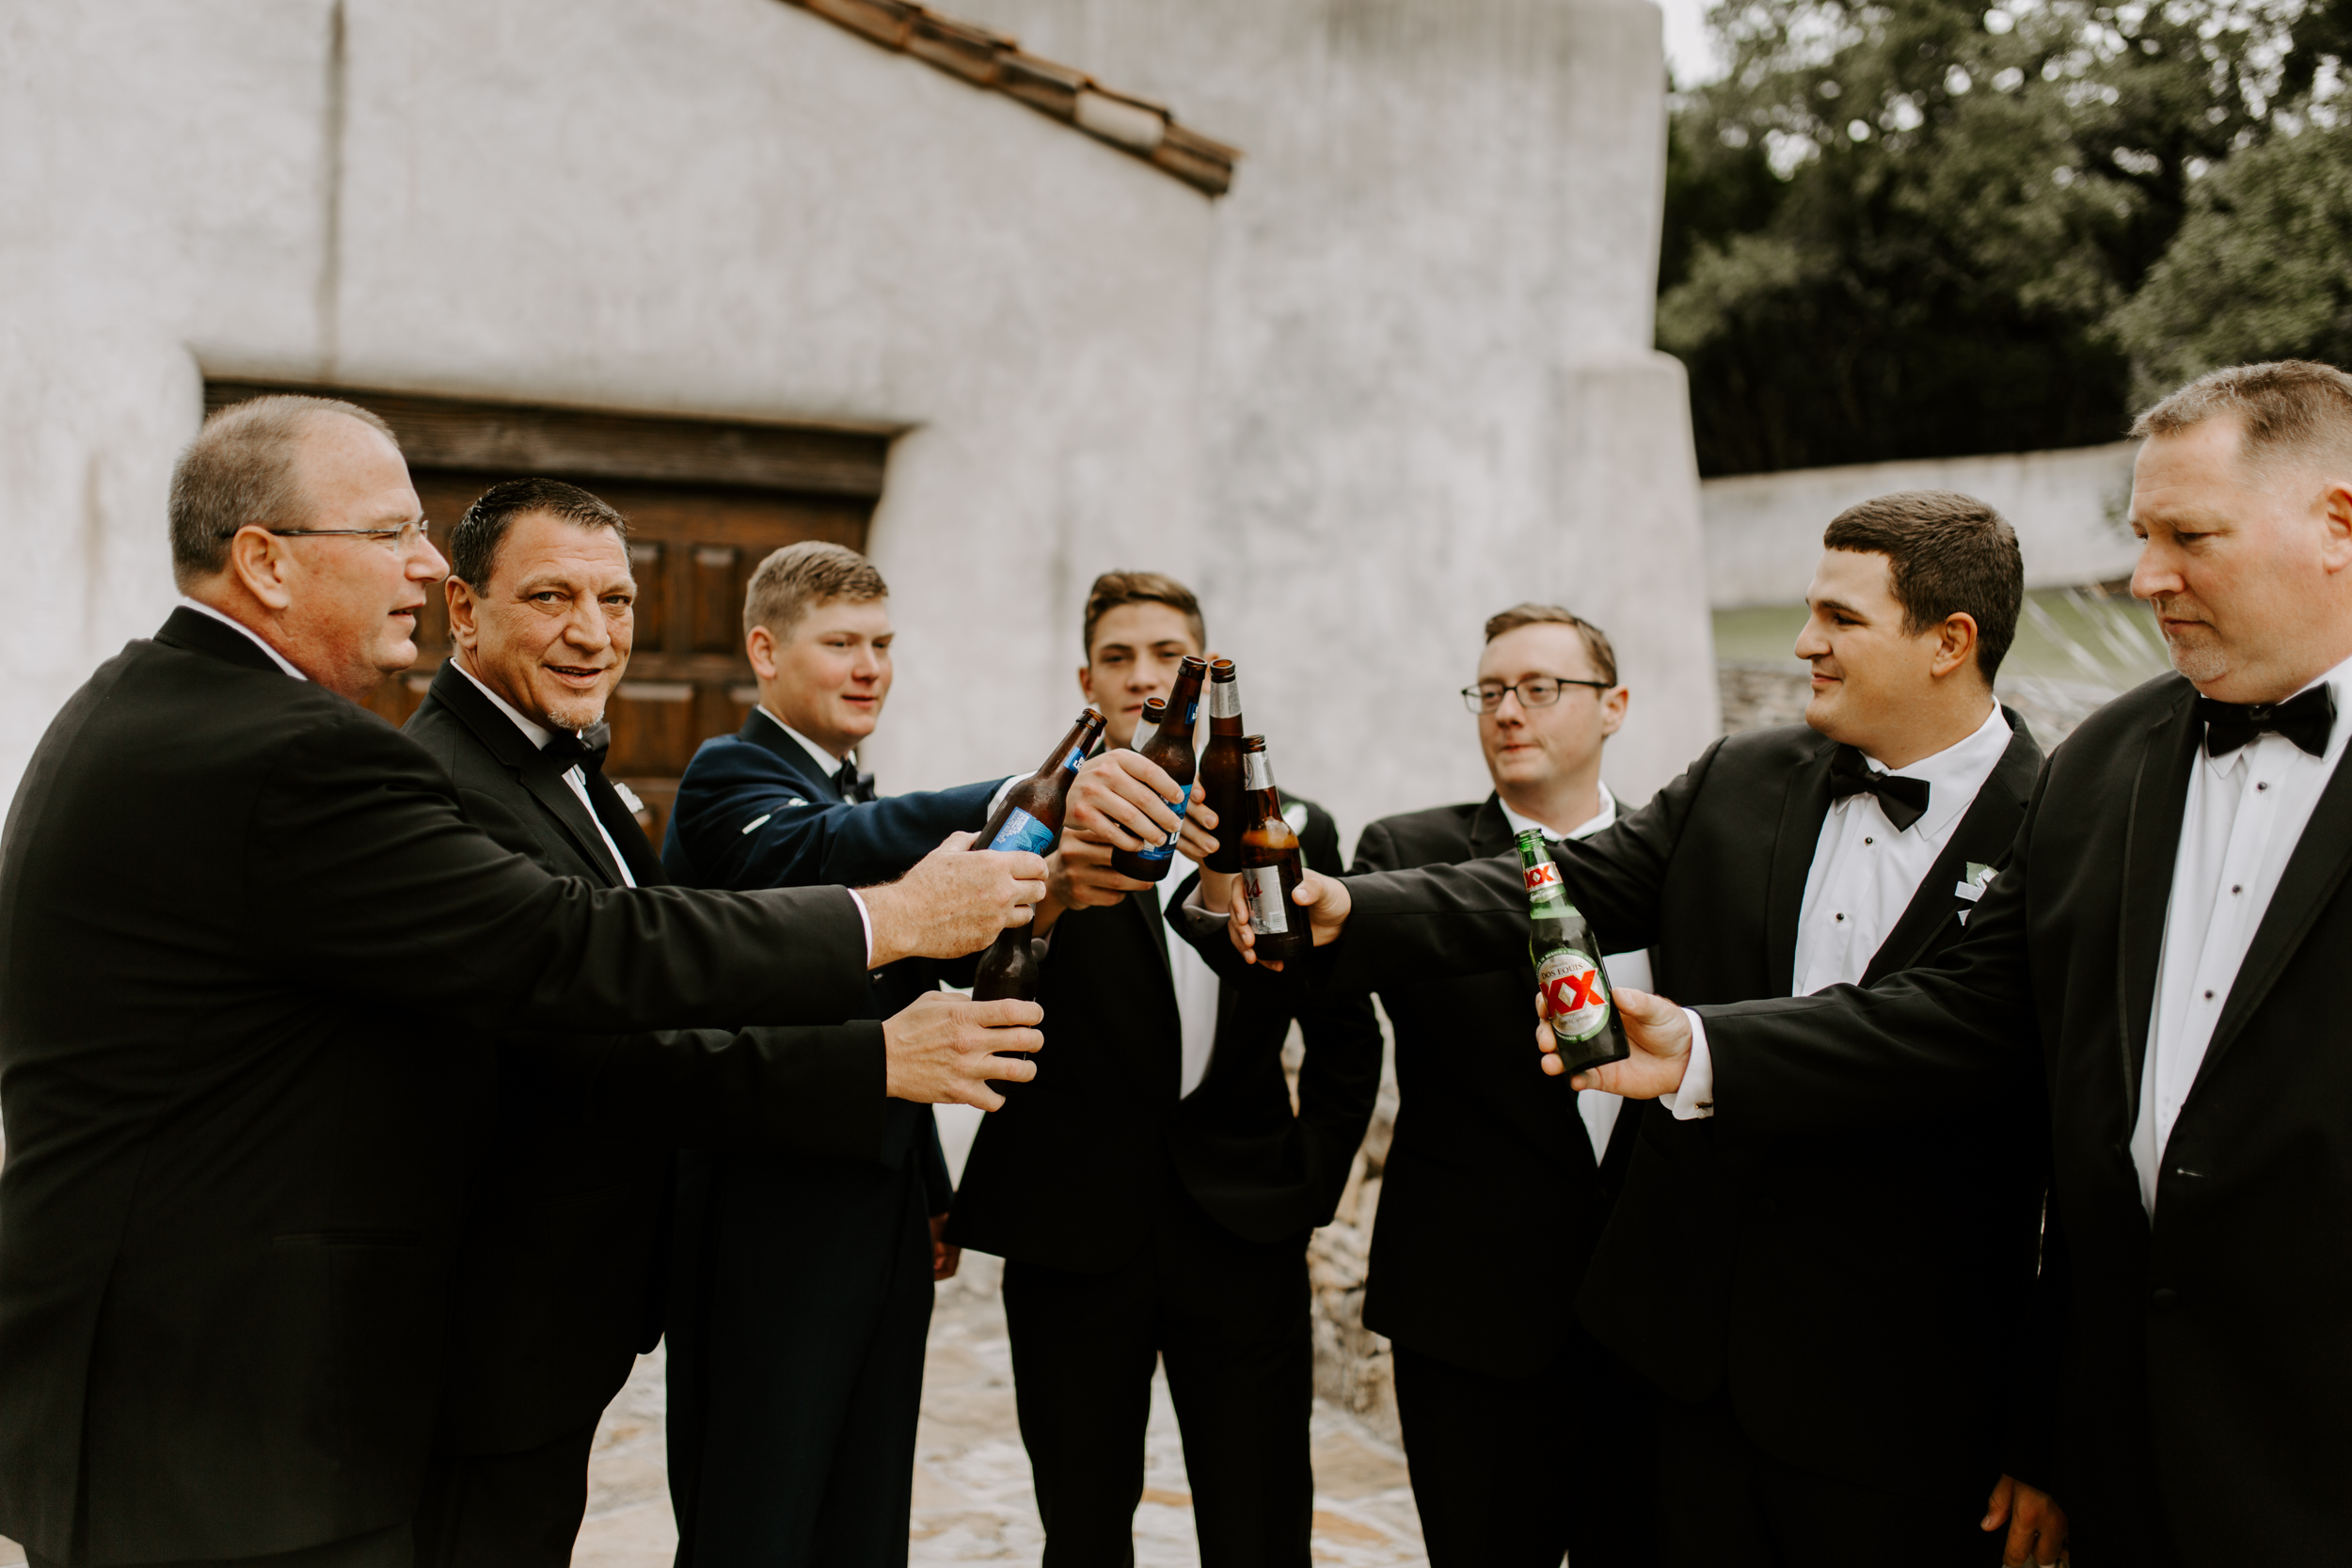 Megan_Caleb_Wedding_2018-133.jpg